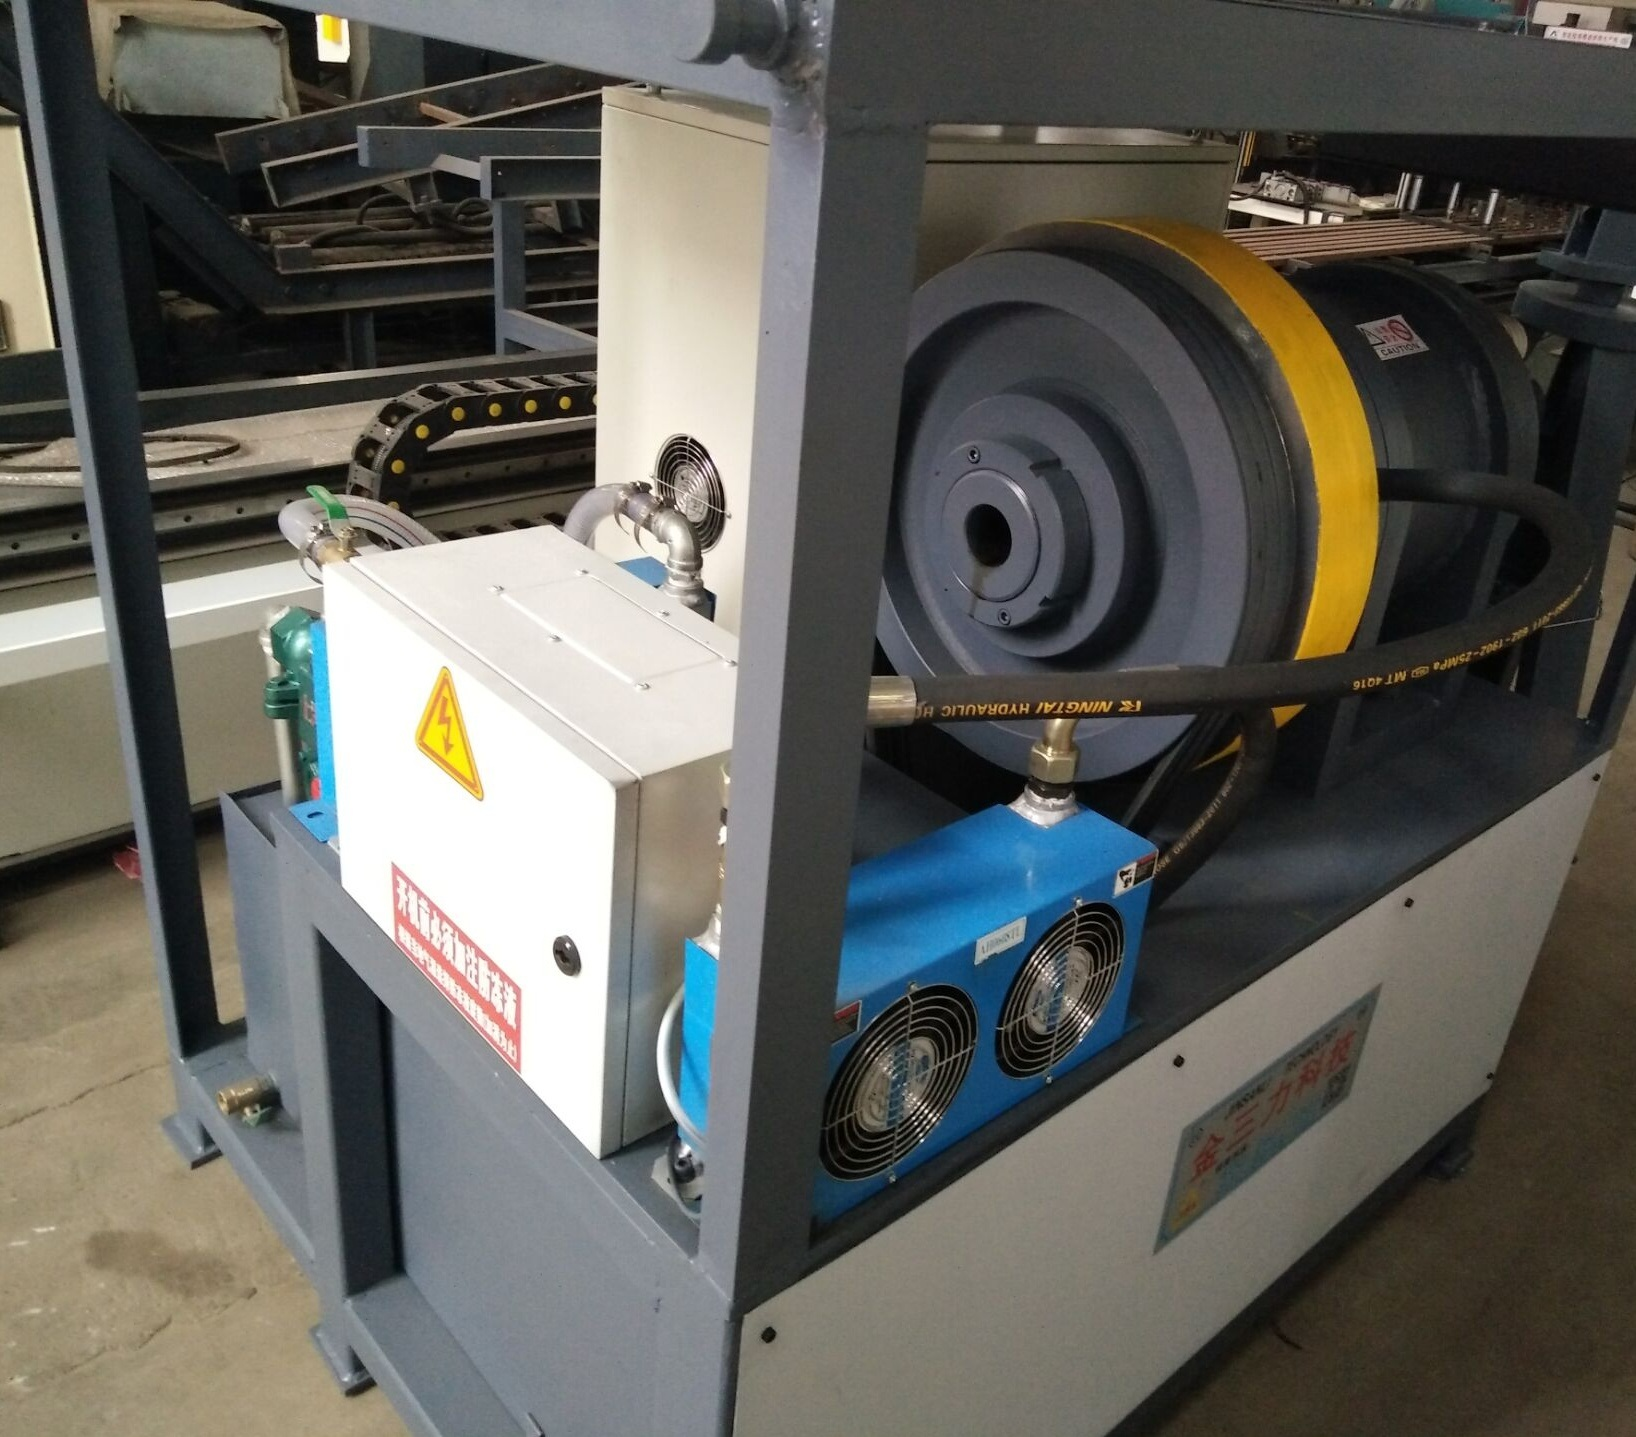 Dgcx-90 Small Pipe Arrow Machine Forming with New Technology